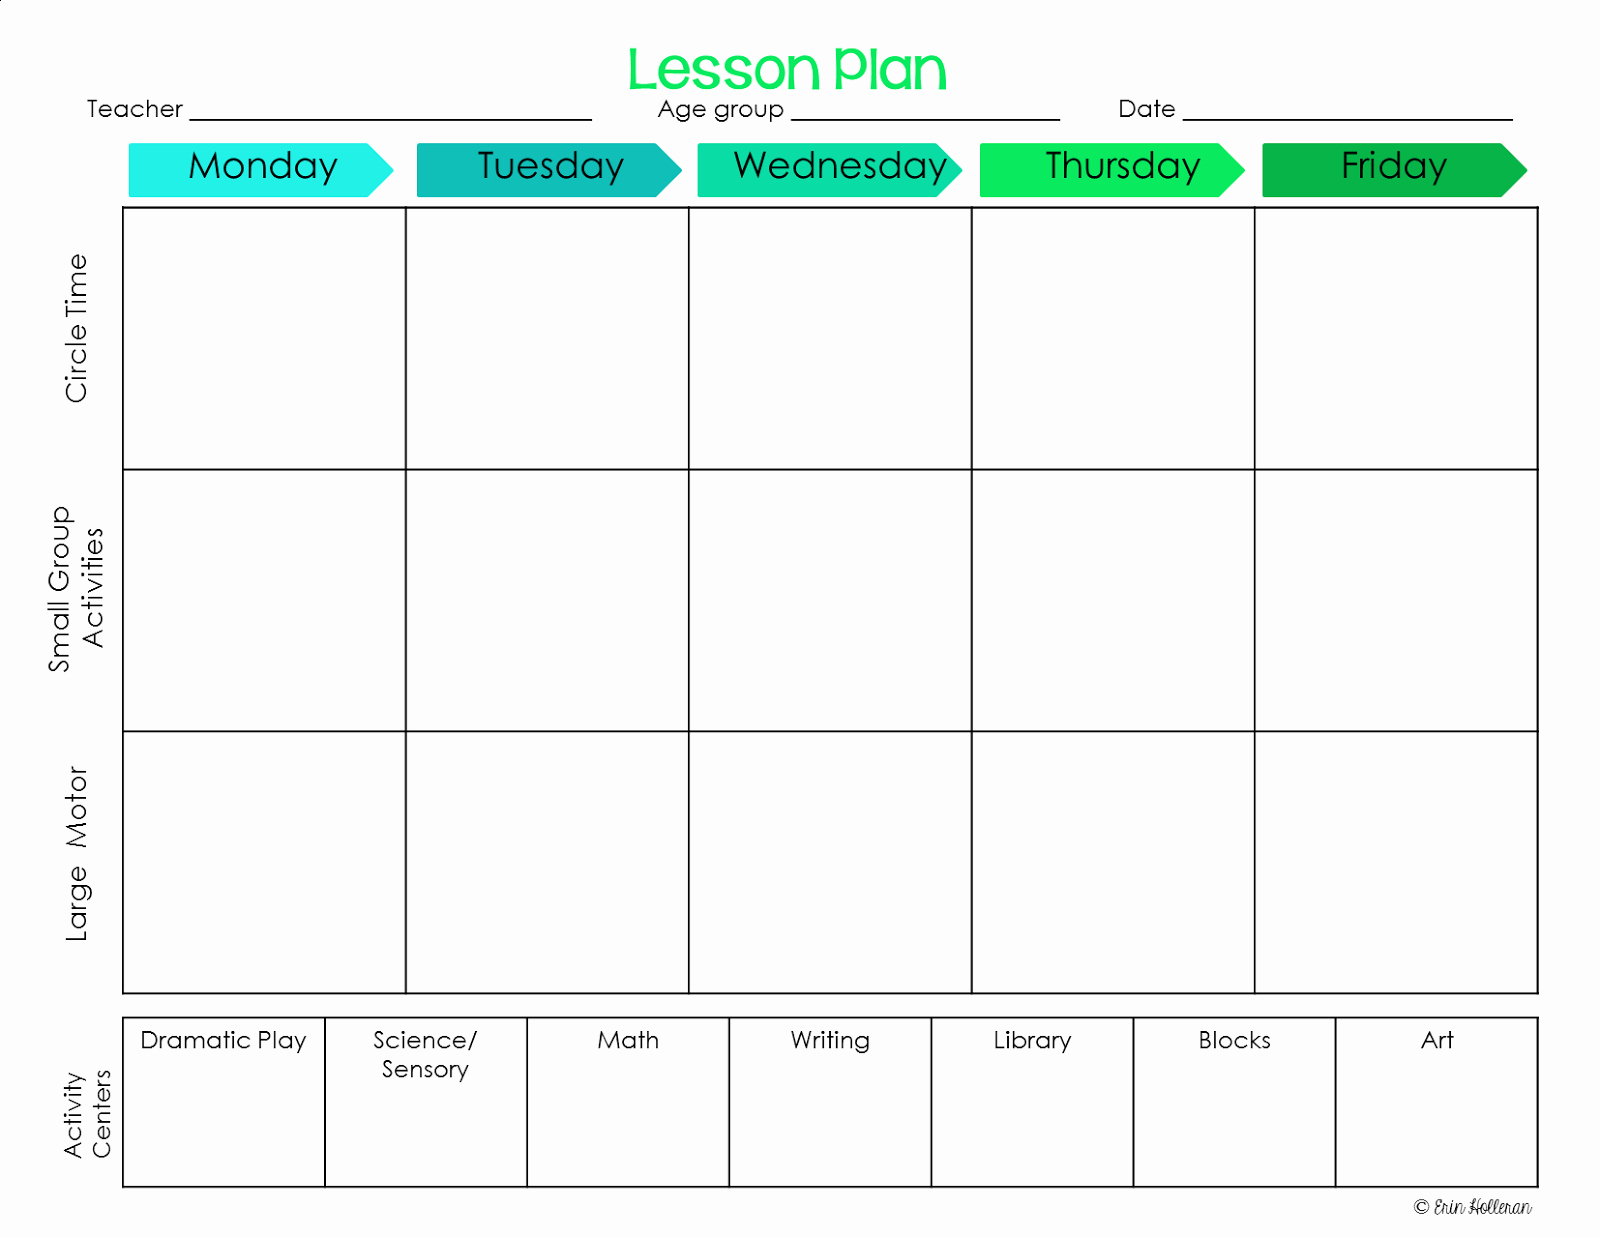 Preschool Lesson Plans Template Awesome Elegant Free Printable Preschool Lesson Plan Template